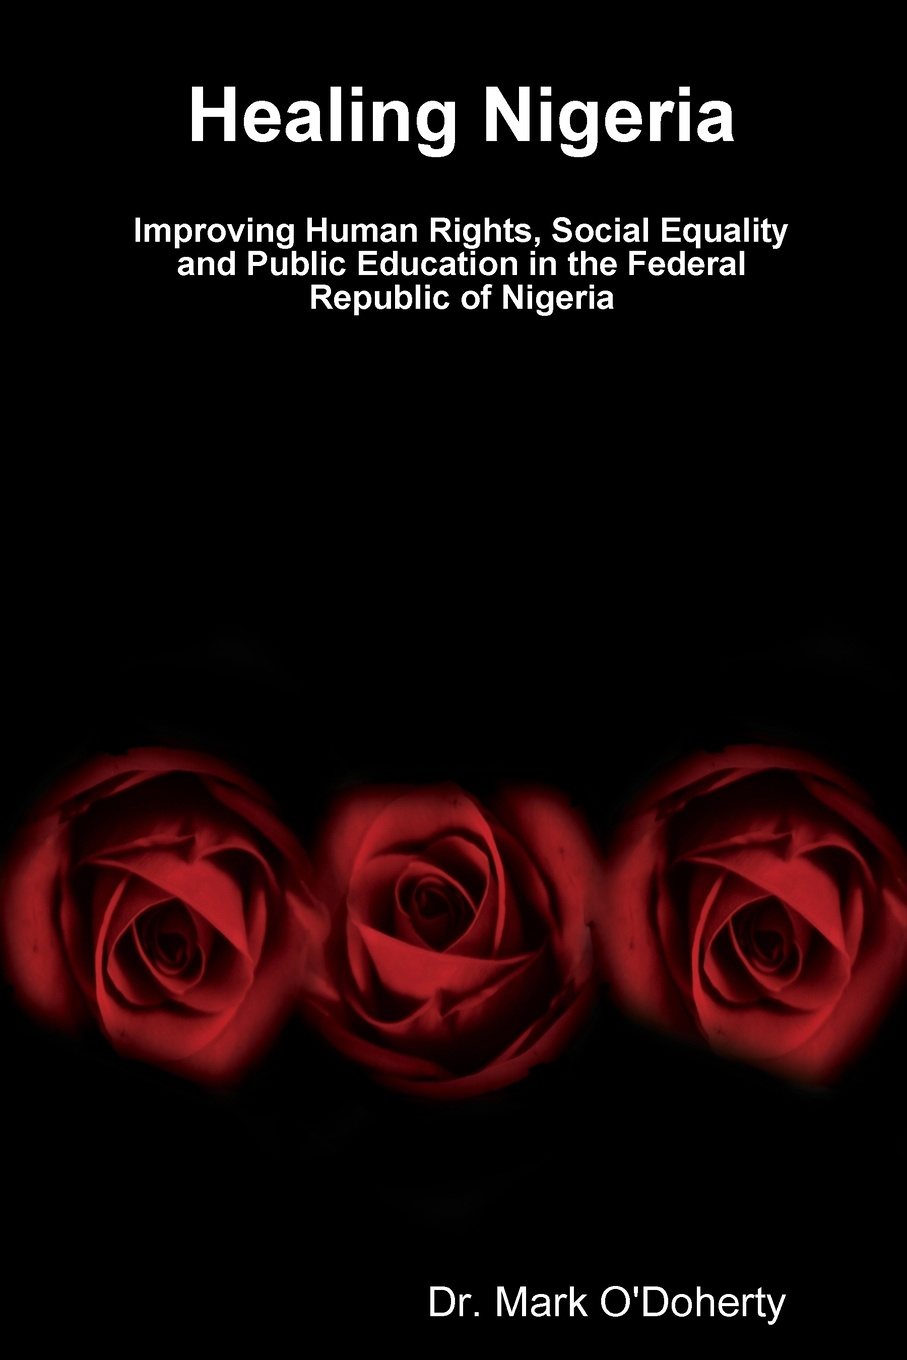 Dr. Mark O'Doherty Healing Nigeria - Improving Human Rights, Social Equality and Public Education in the Federal Republic of Nigeria ernest udalla public policy in nigeria s fourth republic 1999 2010